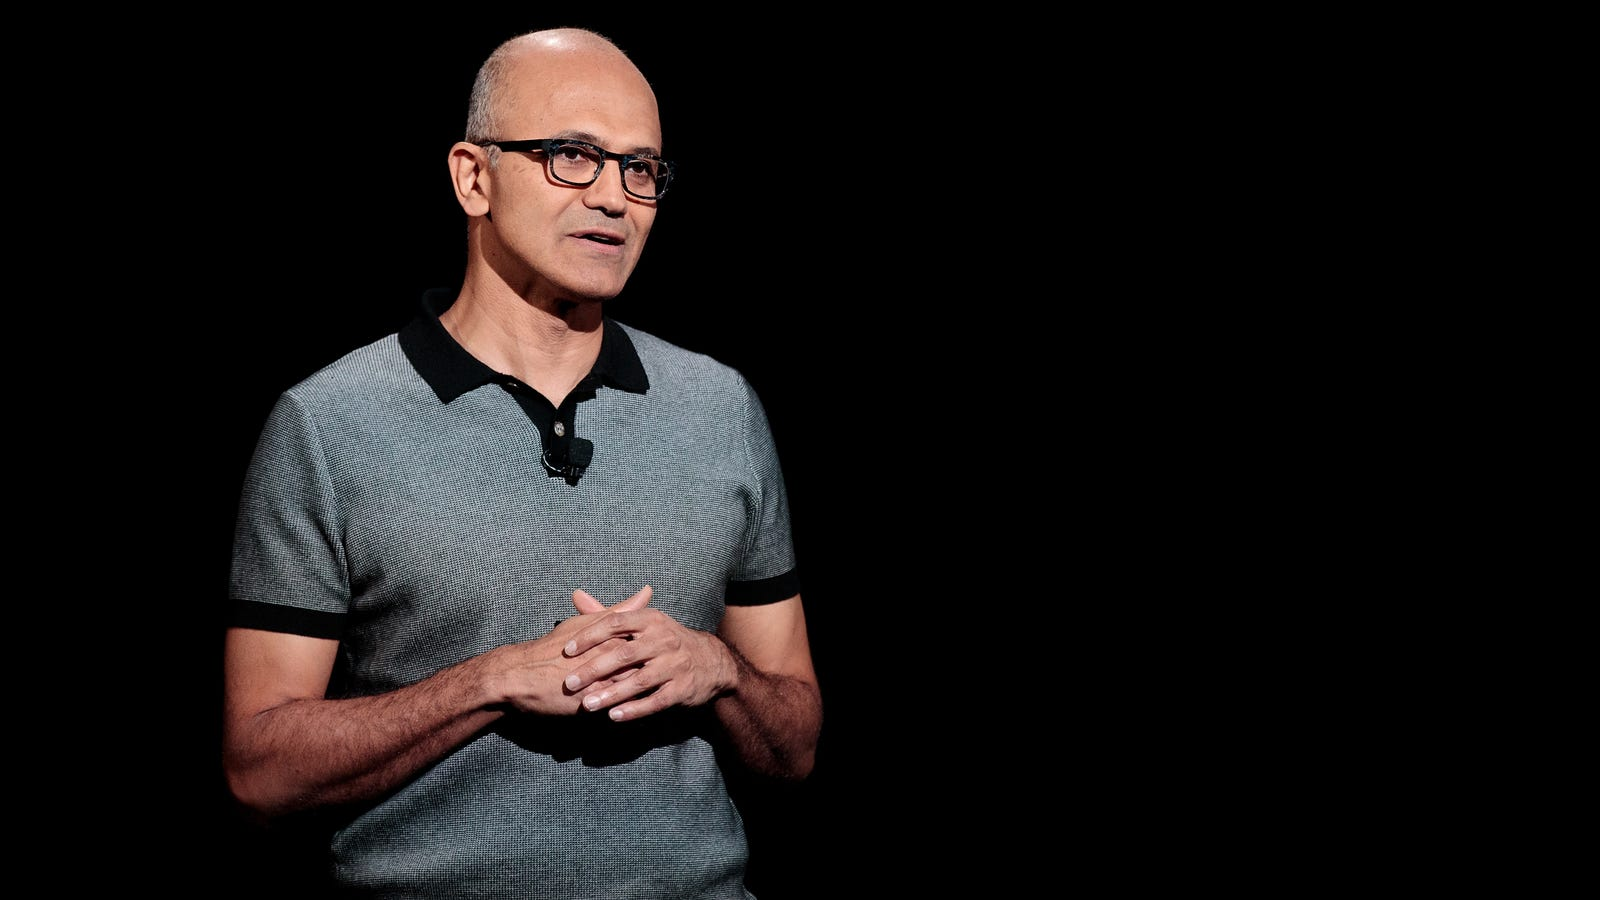 Microsoft CEO Downplays ICE Contract in Email to Employees